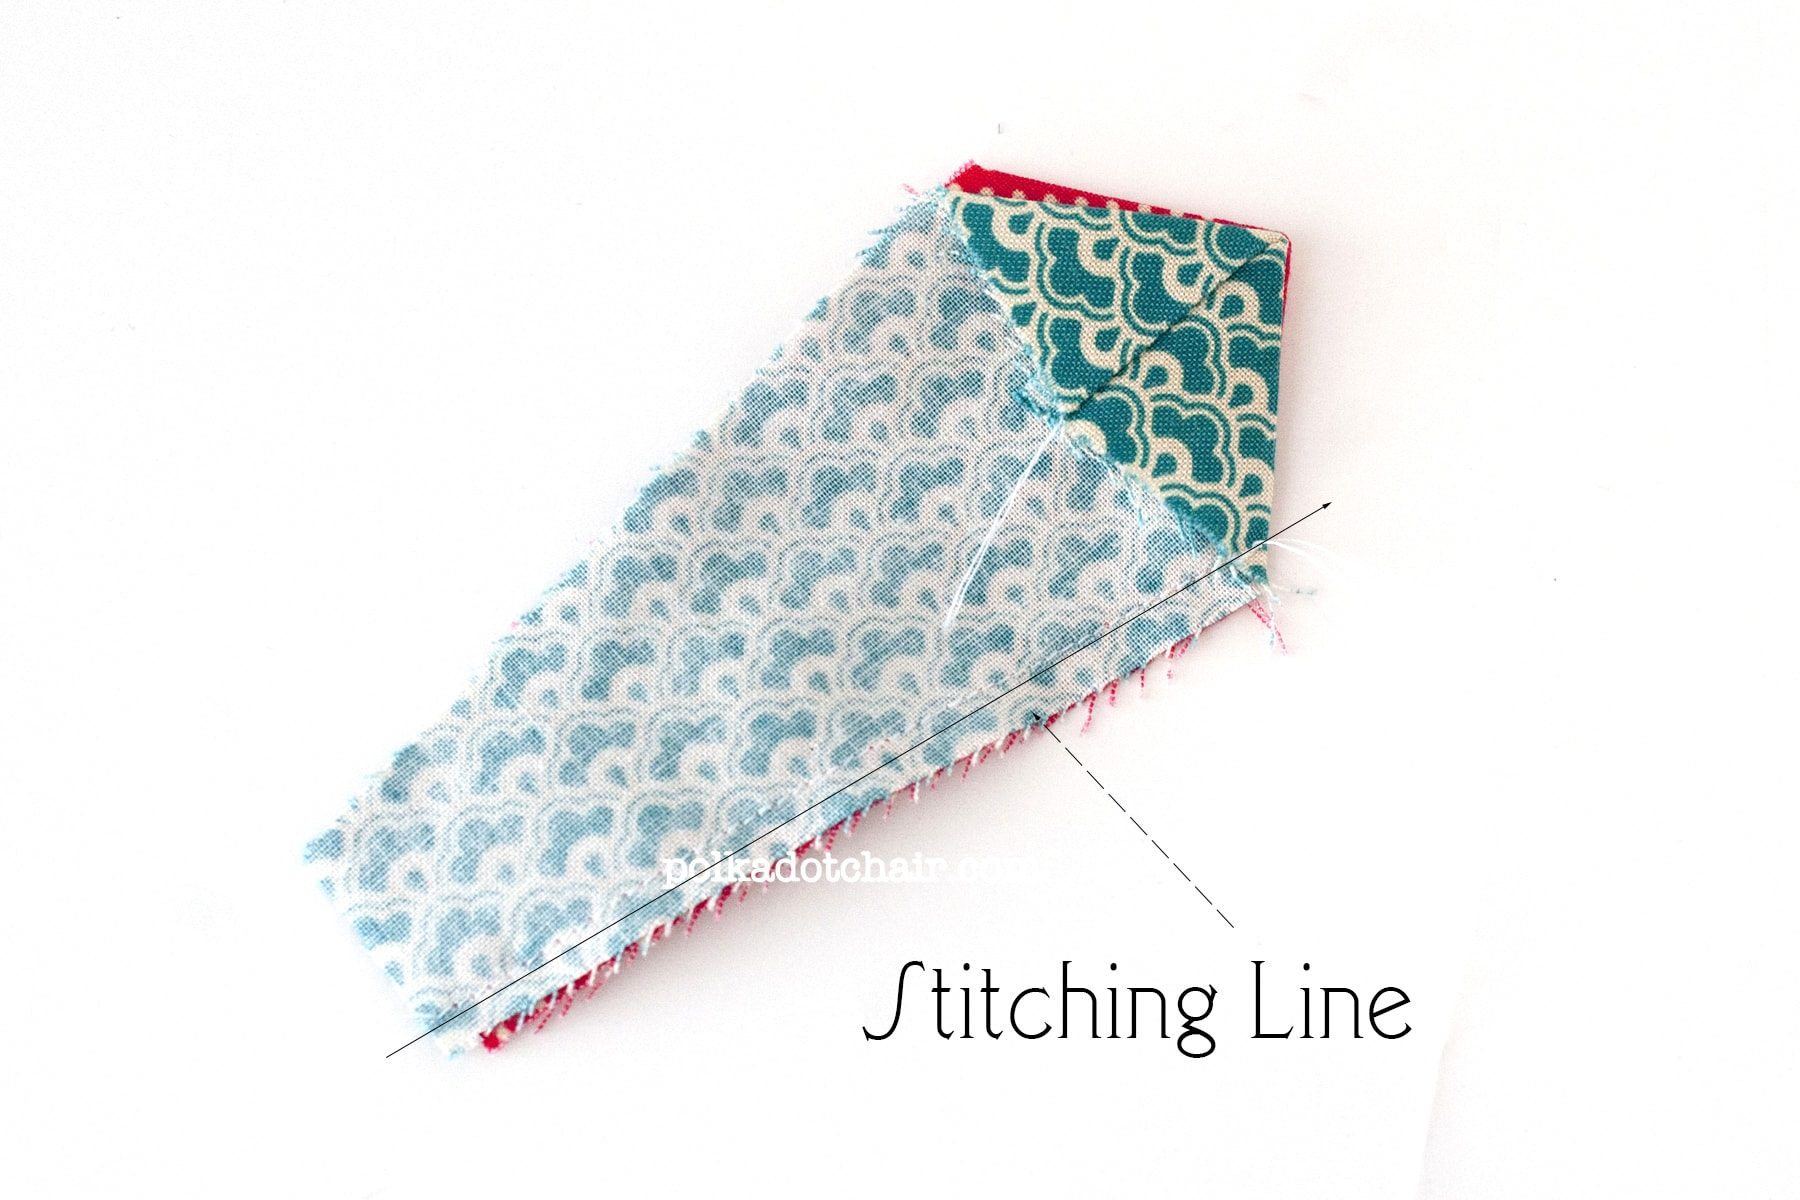 Free Tutorial for a Dresden Quilt Block; the August Block of the month featured on polkadotchair.com